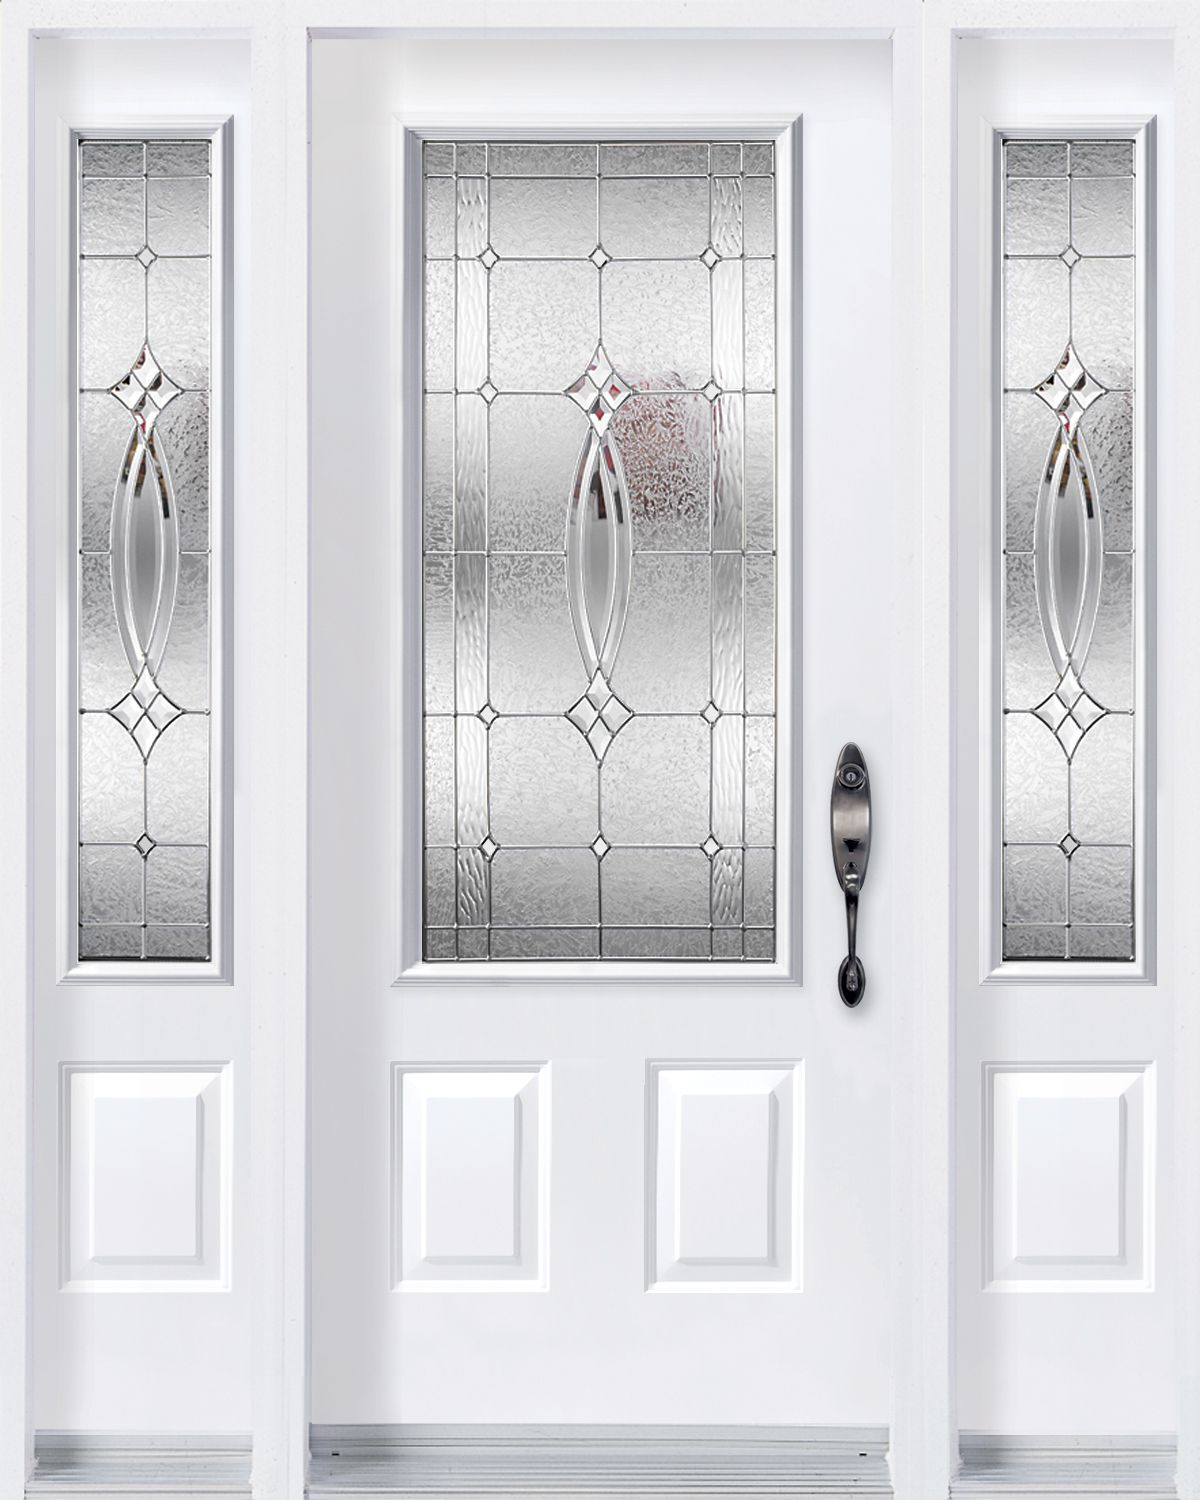 Elegance Series Kohltech Windows And Entrance Systems Canada Windows And Doors White Internal Doors Entrance Doors